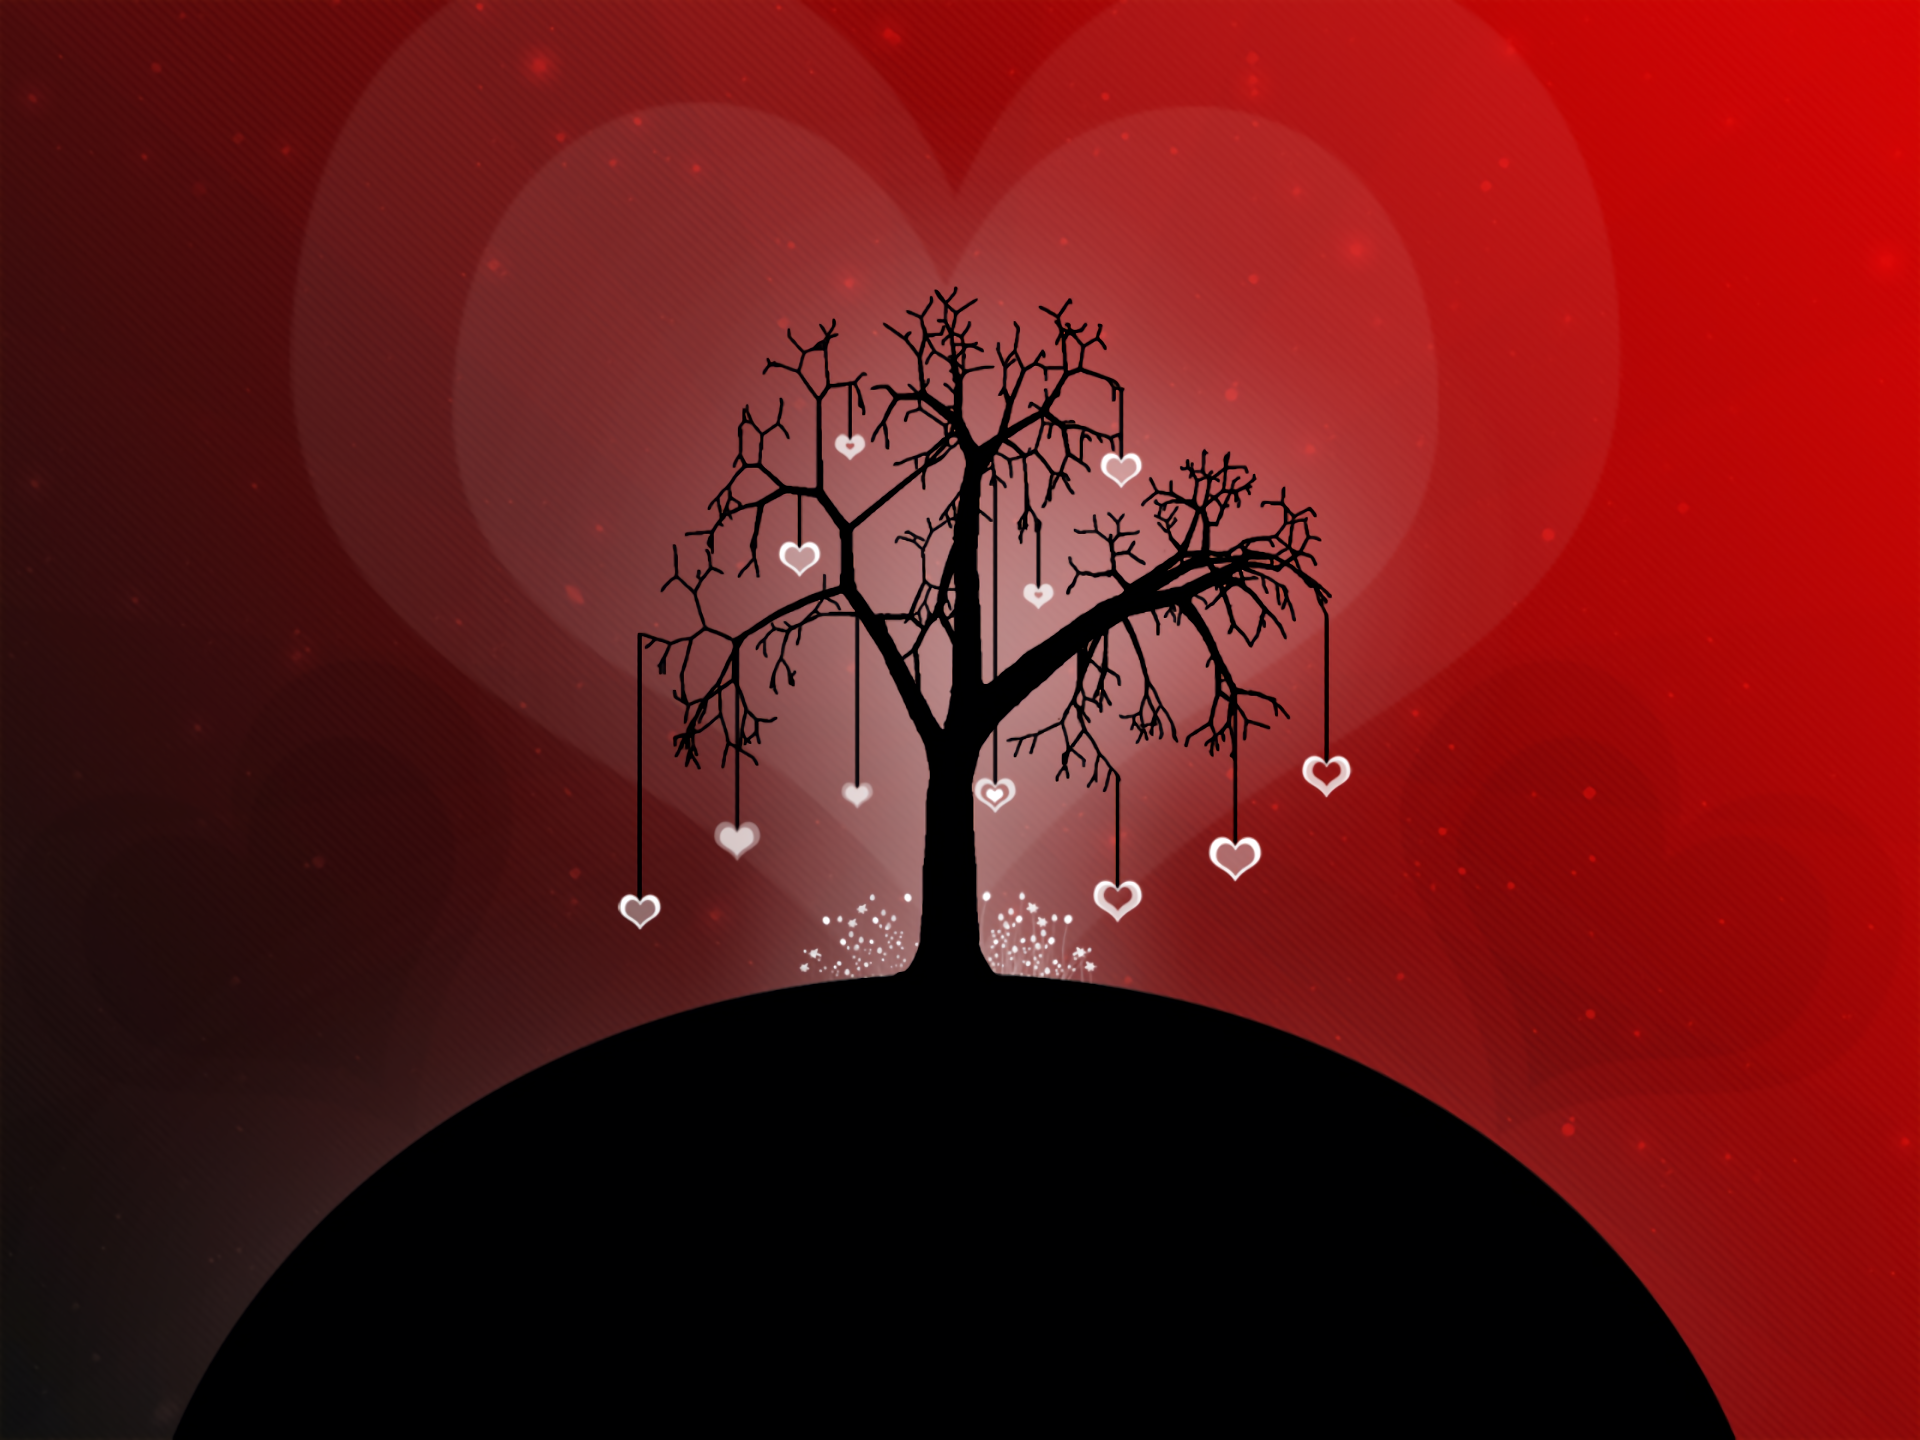 Artistic - Love  Tree Artistic Heart Wallpaper